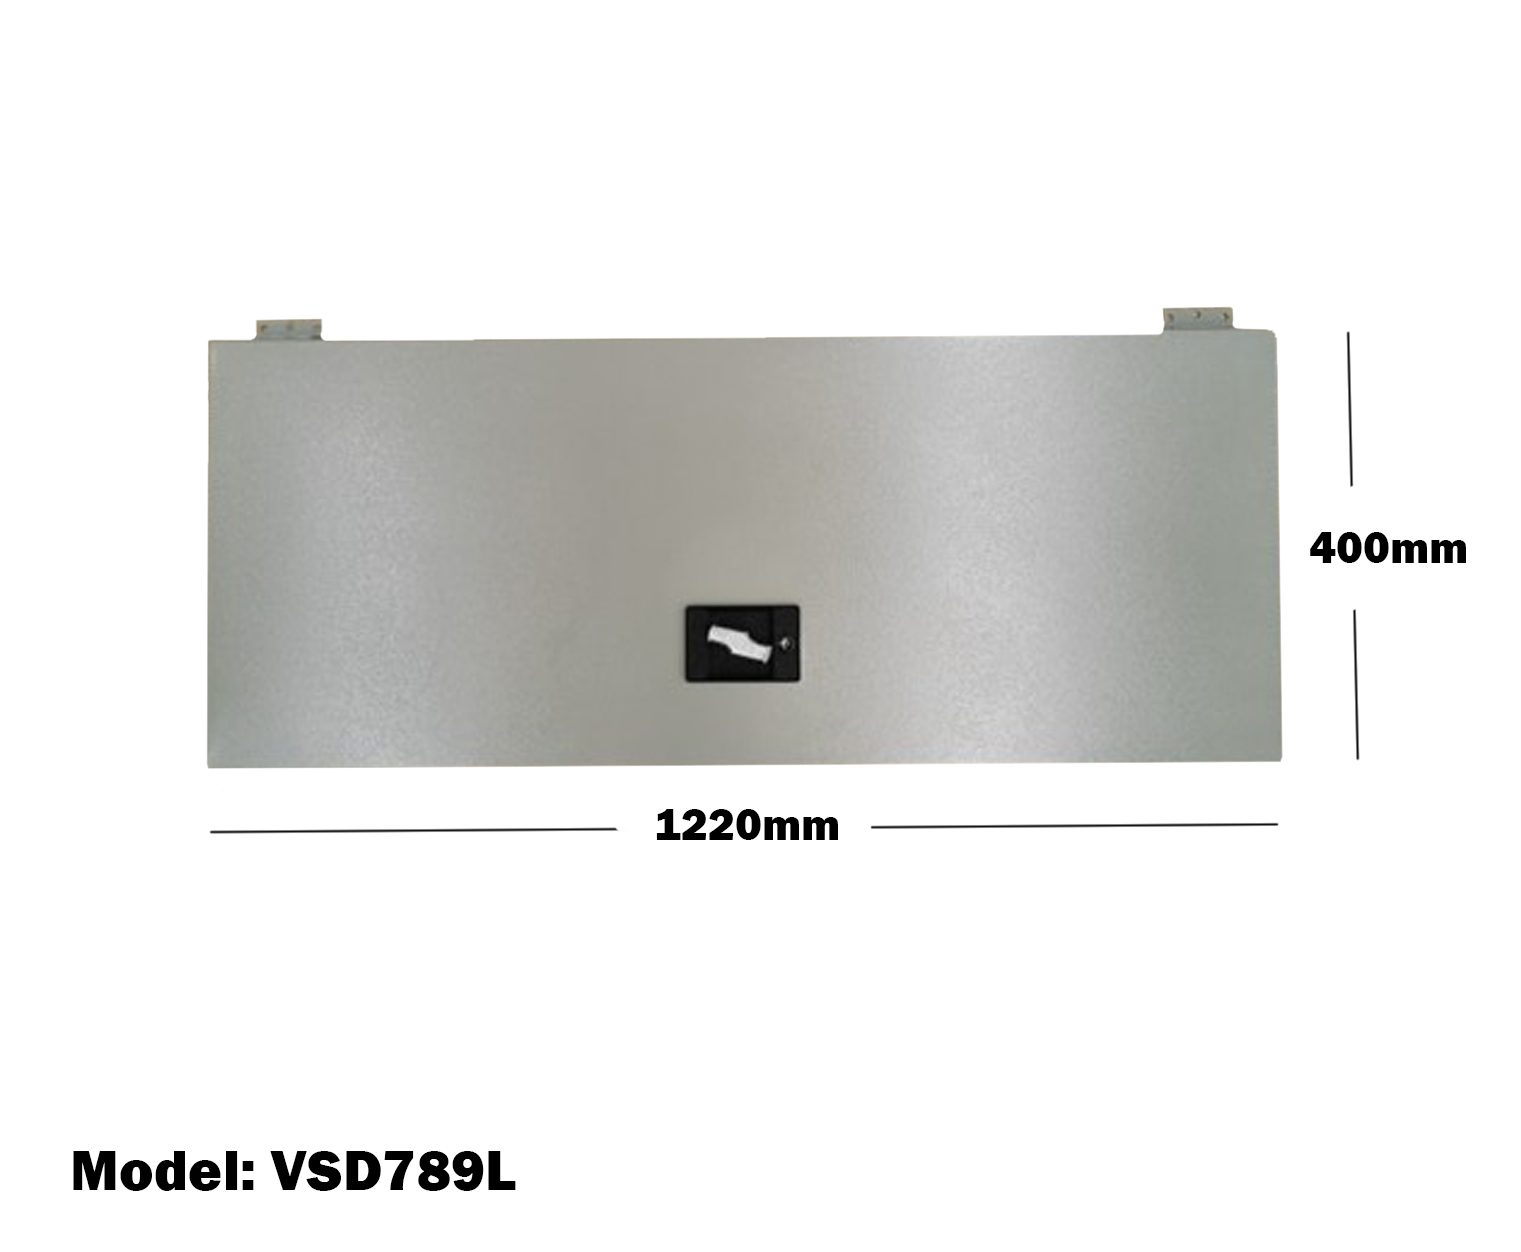 Van Shelving 1220mm(L) x 400mm(H) Lockable Door Double Tier For Van Shelving System VSD789L